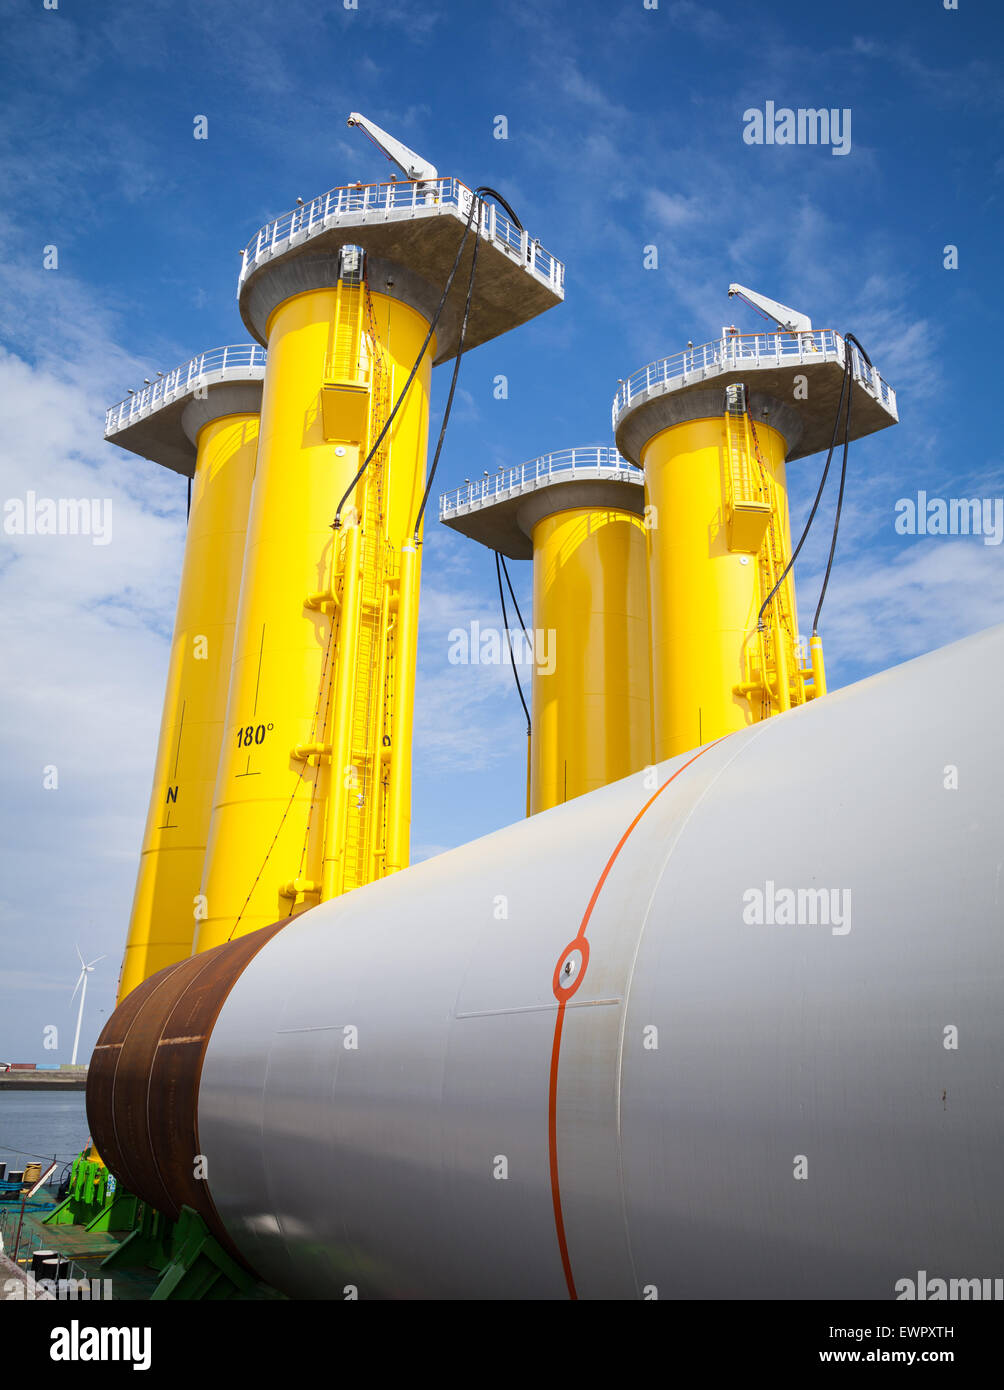 Transition pieces in Eemshaven destined for the Gode Offshore Wind Farm in Germany - Stock Image